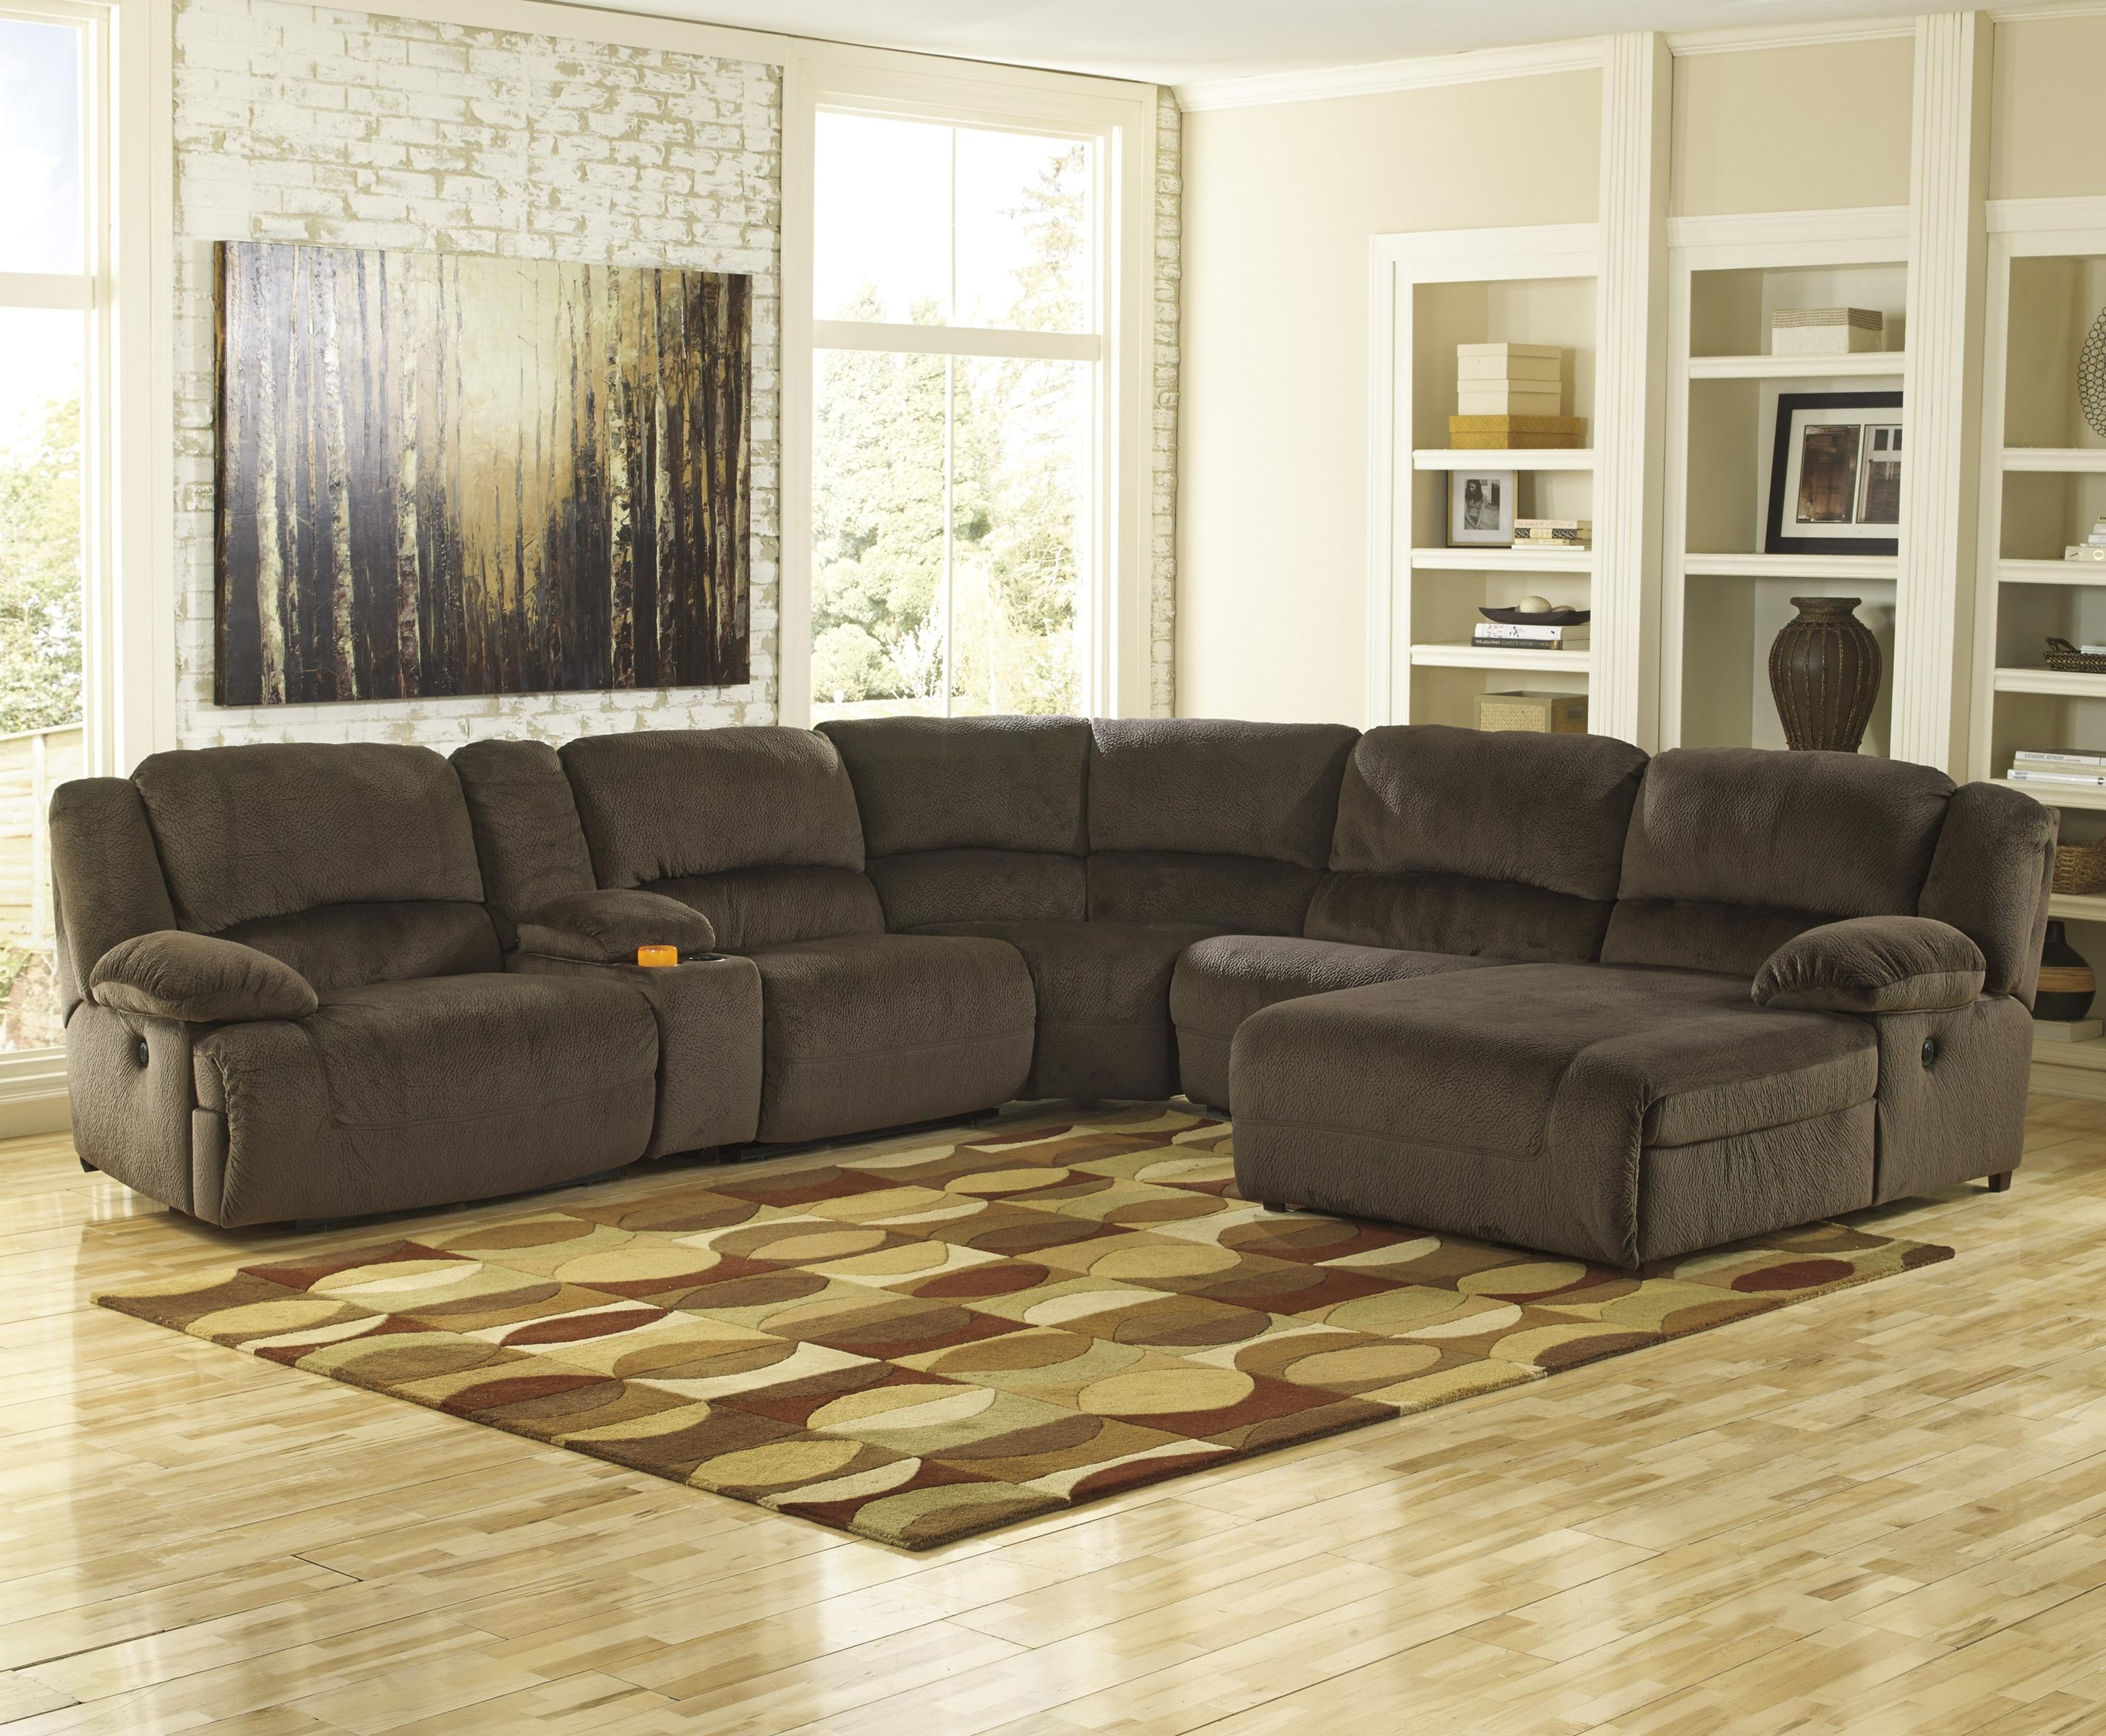 Signature Designashley Toletta – Chocolate Power Reclining Pertaining To Norfolk Chocolate 3 Piece Sectionals With Raf Chaise (Image 30 of 33)